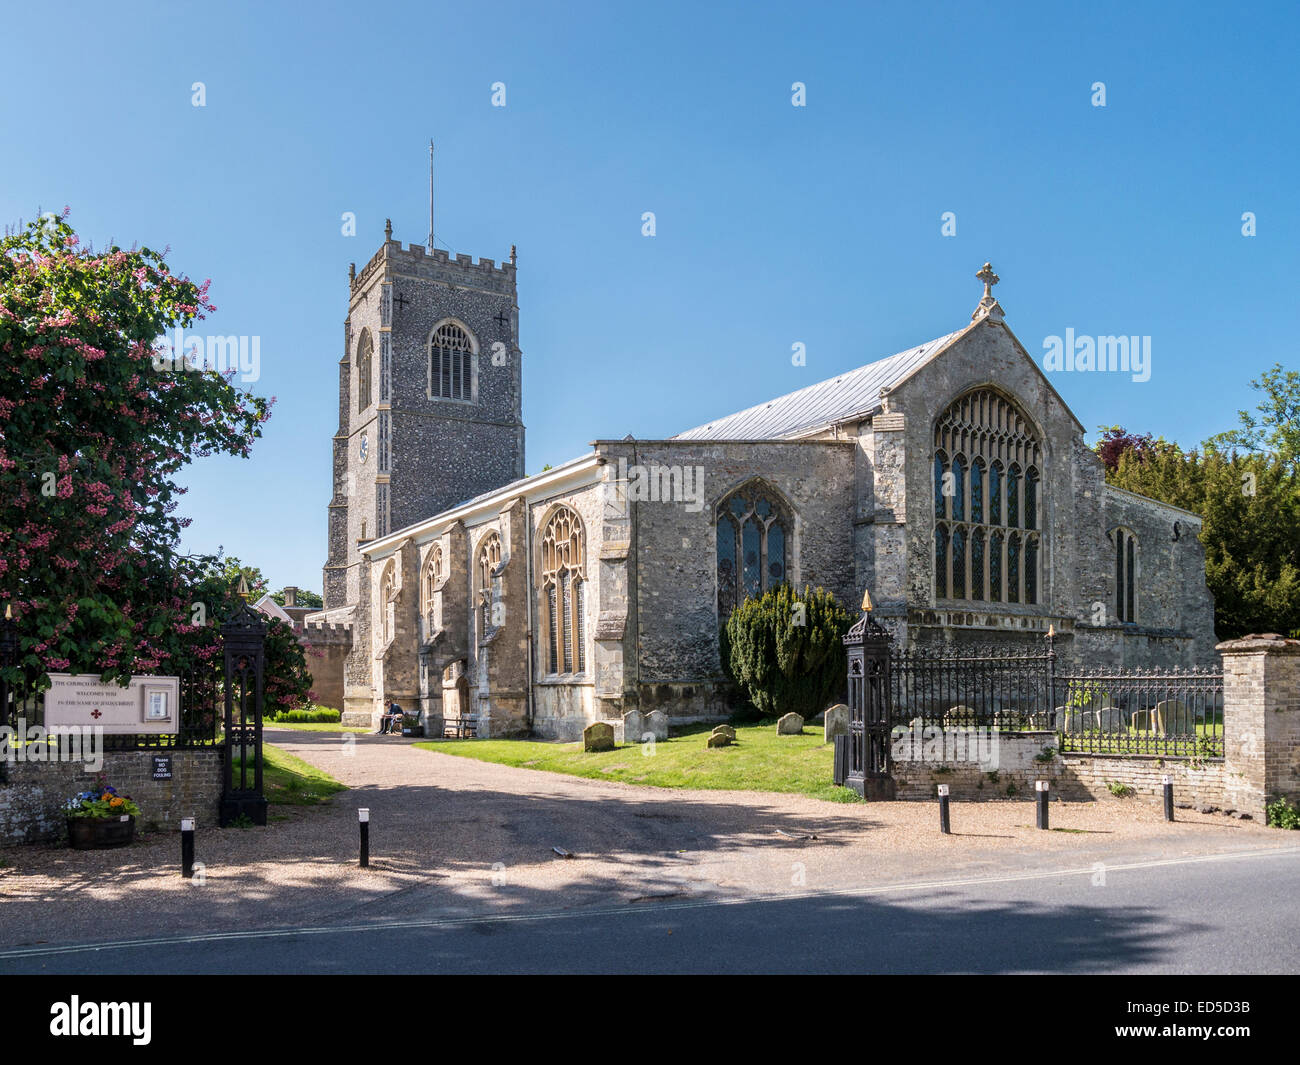 The Church of St Michael in the picturesque market town of Framlingham, Suffolk. - Stock Image